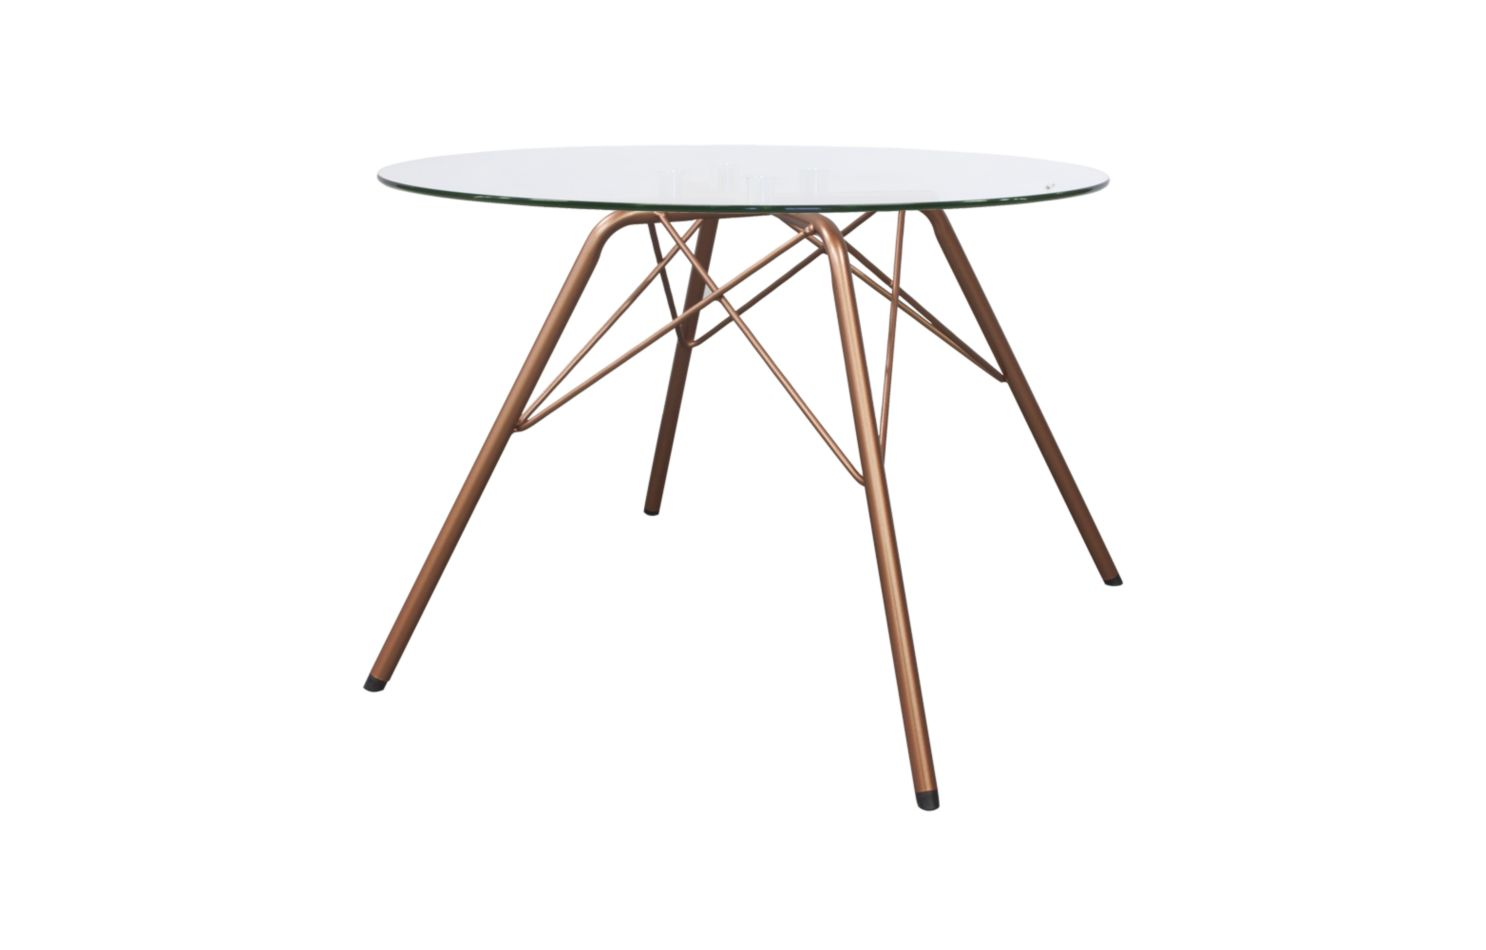 Home Sweet Home  personnalisez votre table basse chez Fly  Plumetis Magazine -> Table Basse Verre Fly